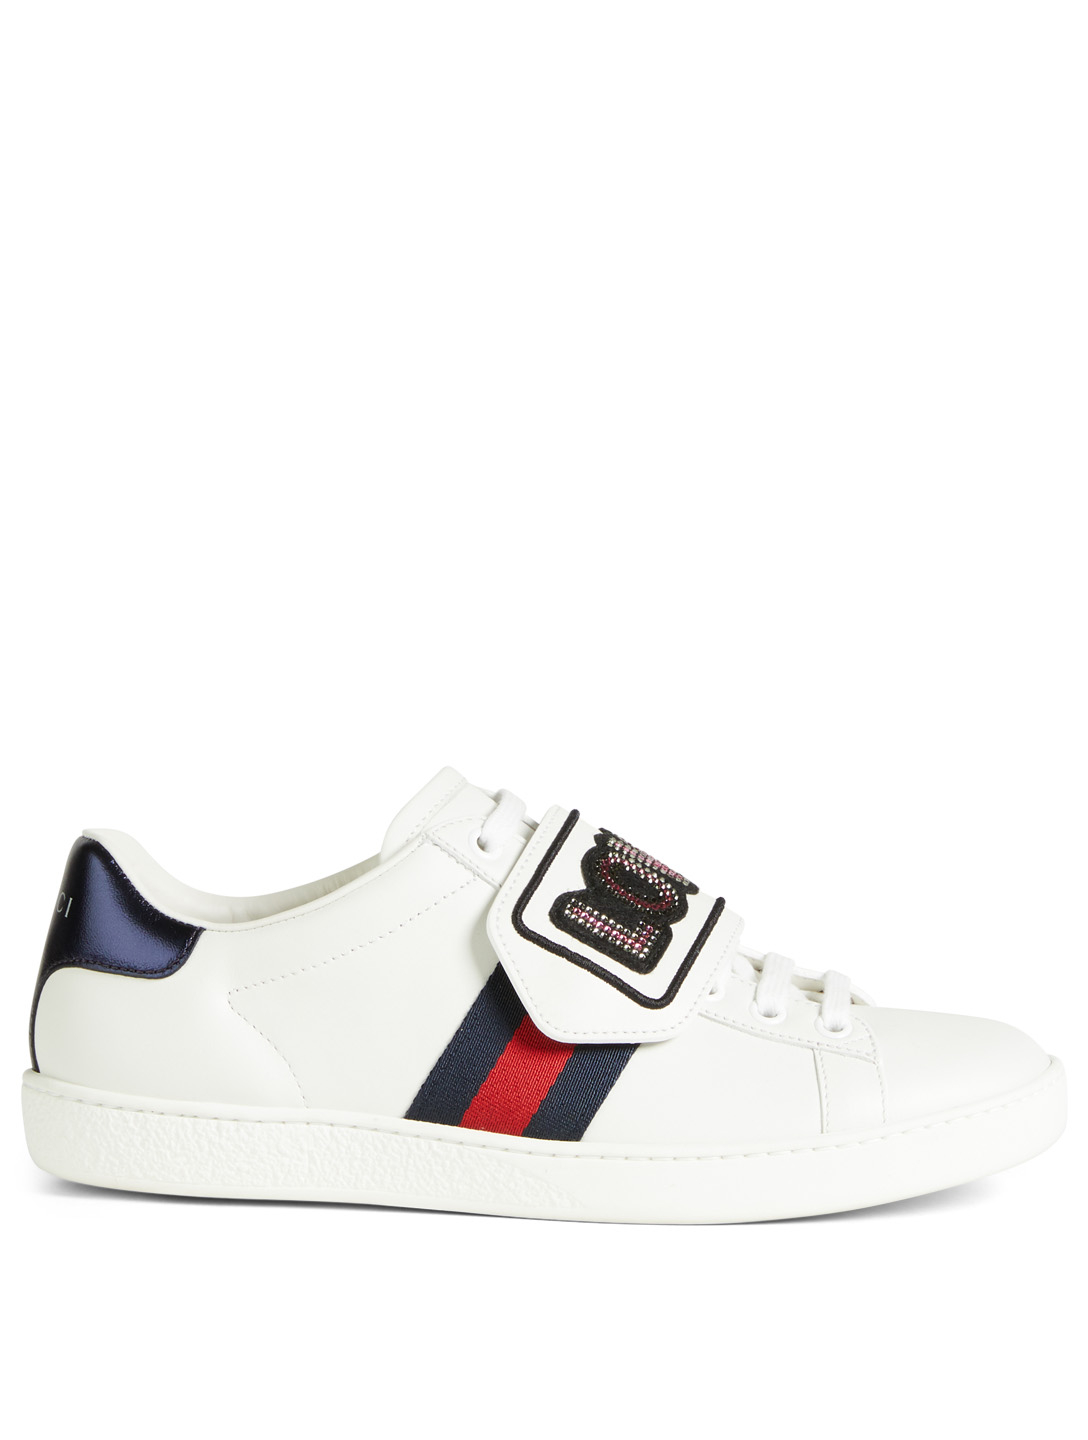 55ad5c7e074 GUCCI Ace Leather Sneakers With Loved Patch